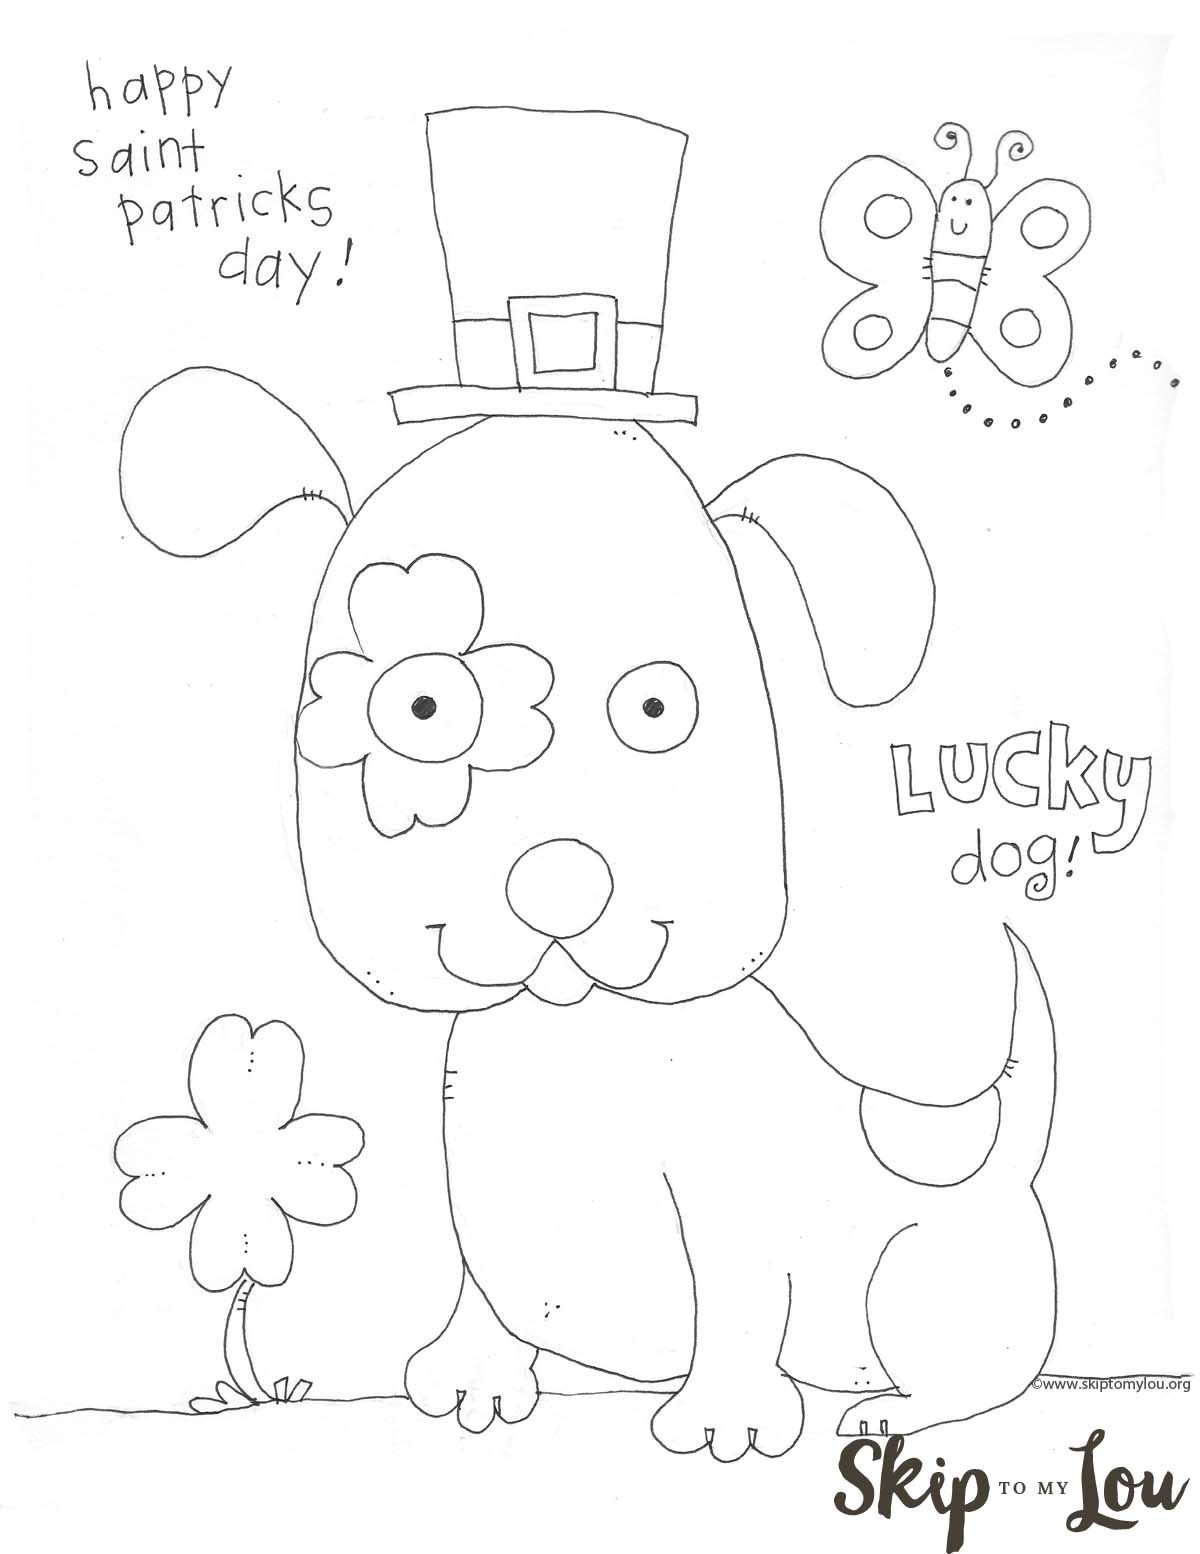 St Patrick S Day Coloring Page Preschool Free Printable